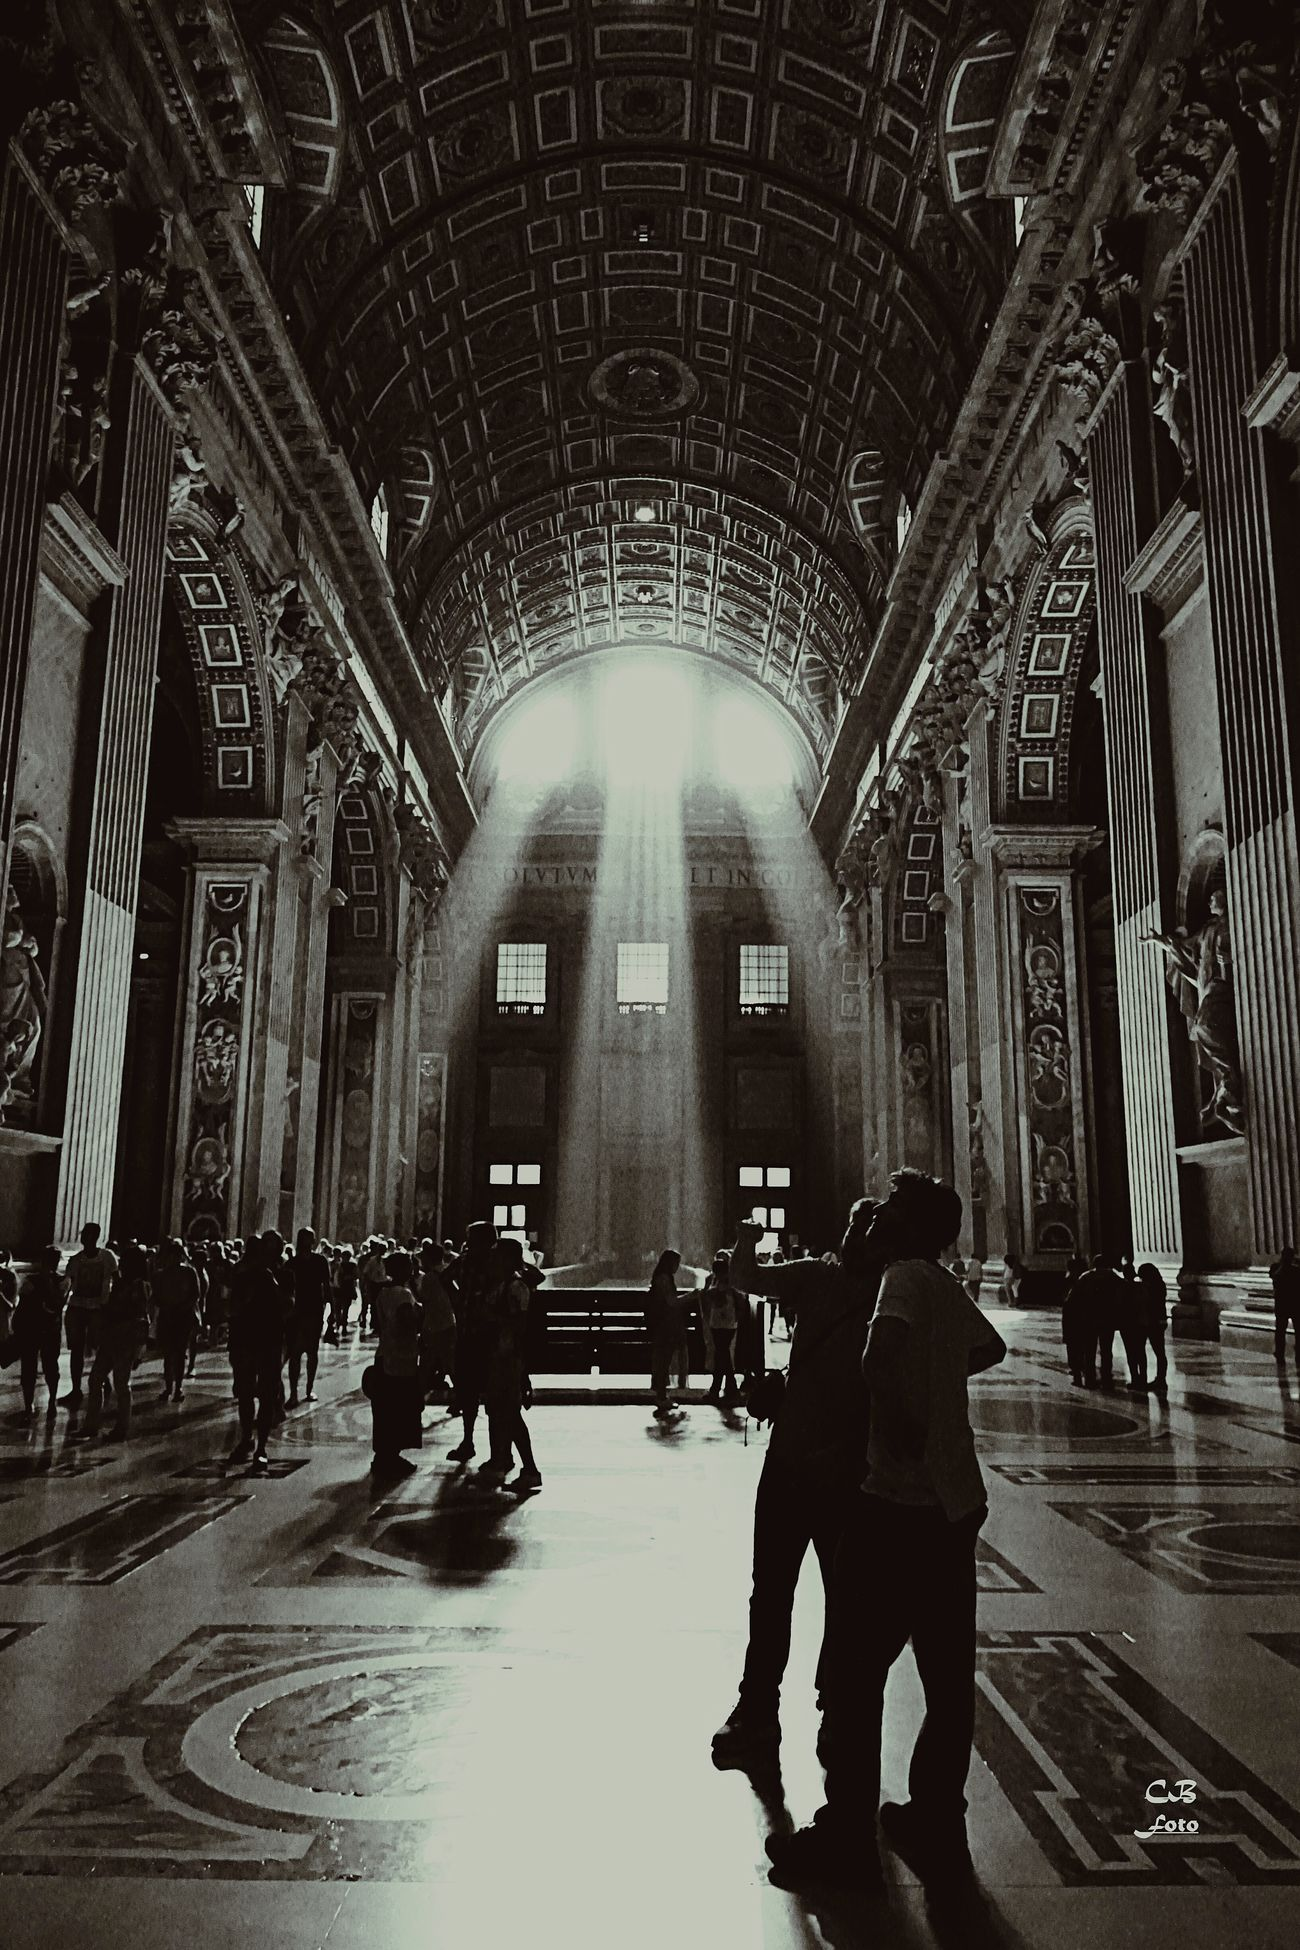 Petersdom, Rom Indoors  Religion Large Group Of People Spirituality People Picture Of The Day Fotooftheday Day Architecture Travel Light Effect Rom Roma Picofday Follower Black&white Cultures